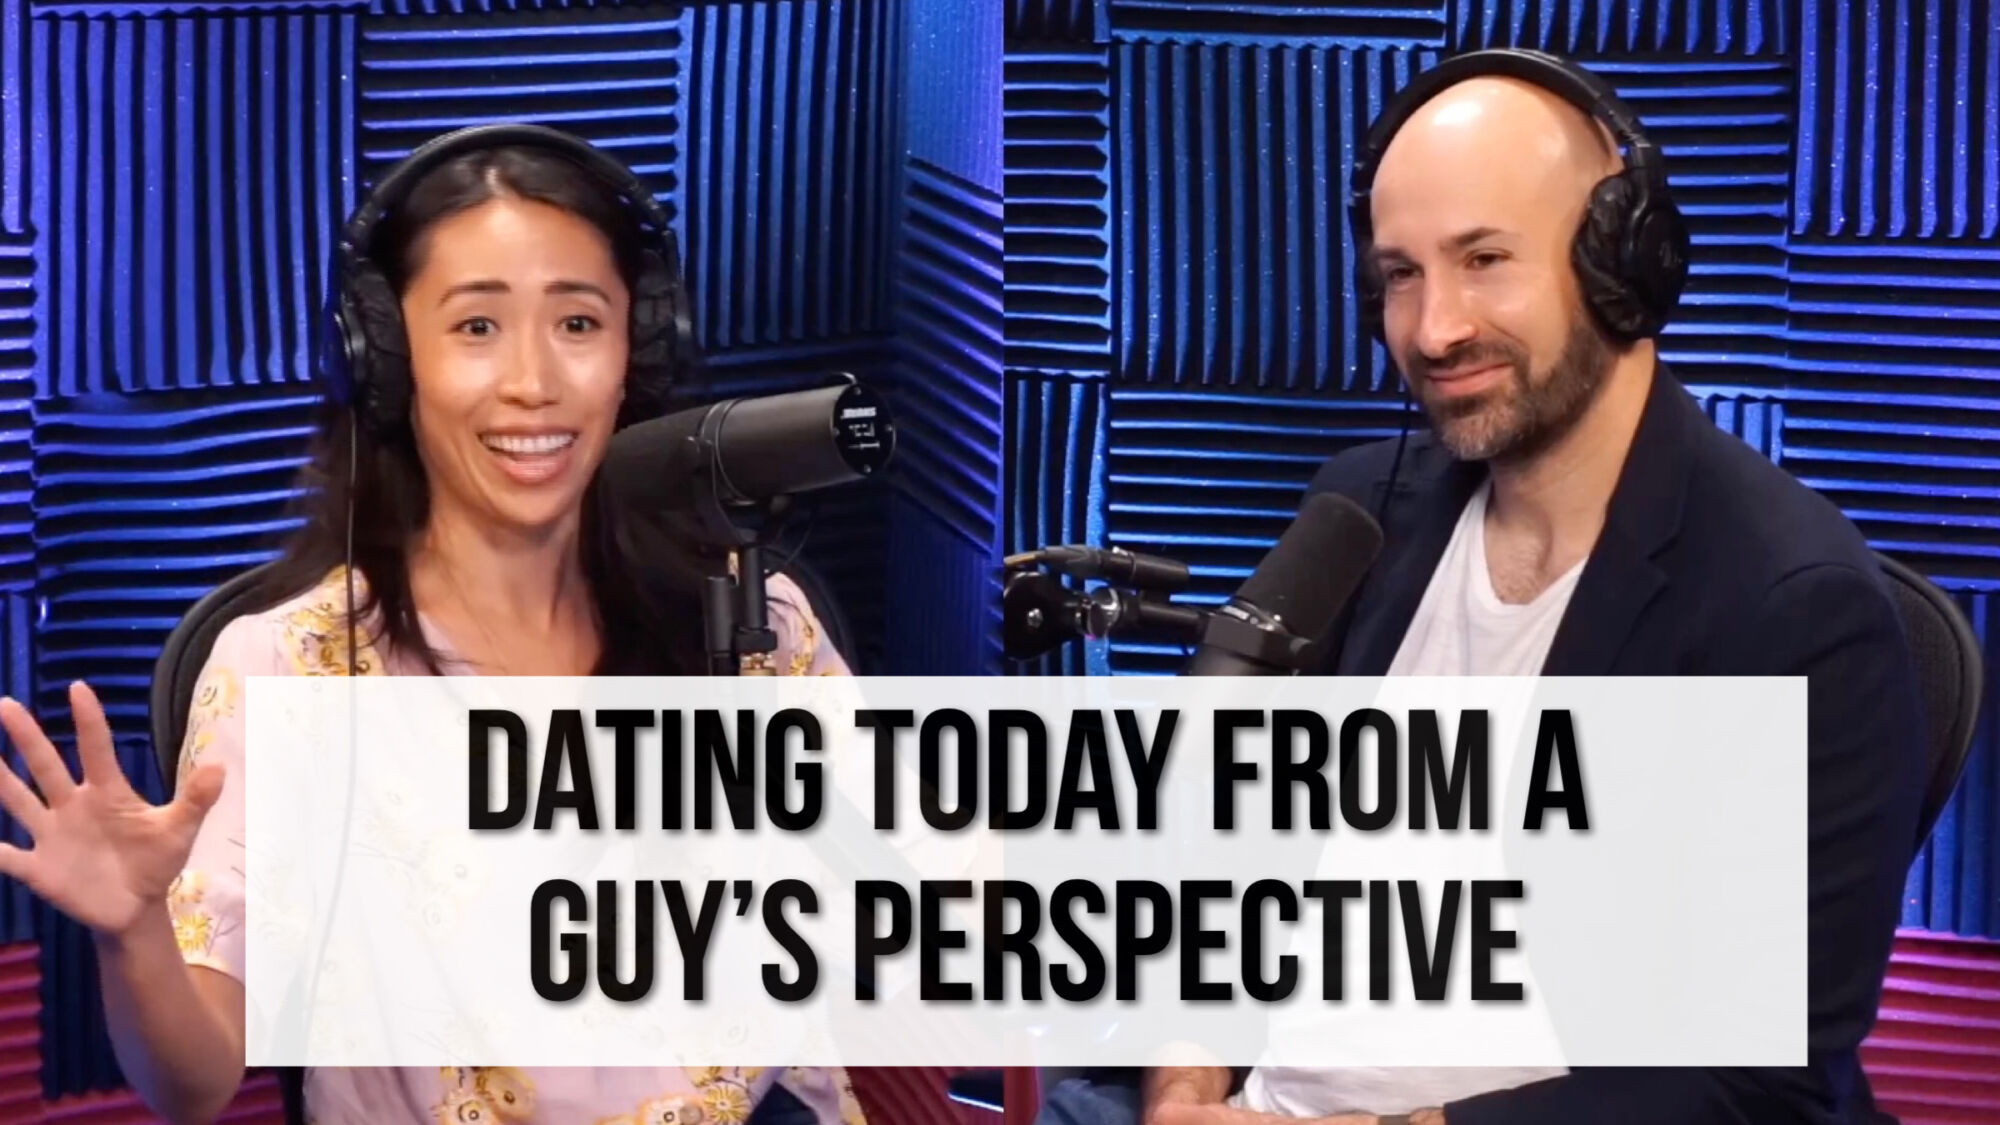 Dating From A Guy's Perspective. The Show Up With Christine Chang Podcast.